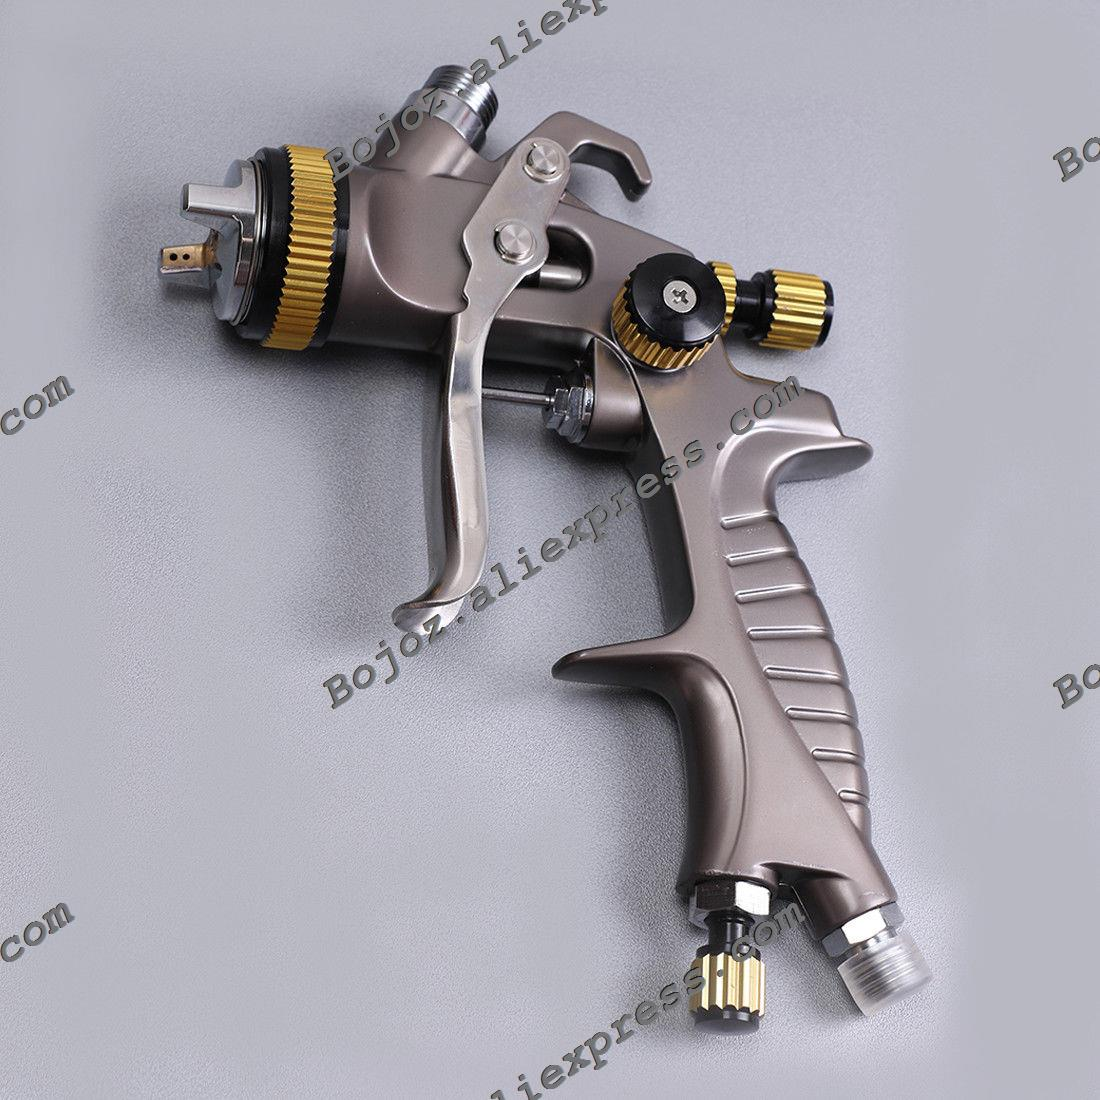 Free Shipping LVMP 913G Gravity feed Paint spray gun w t 600ml Cup for car body